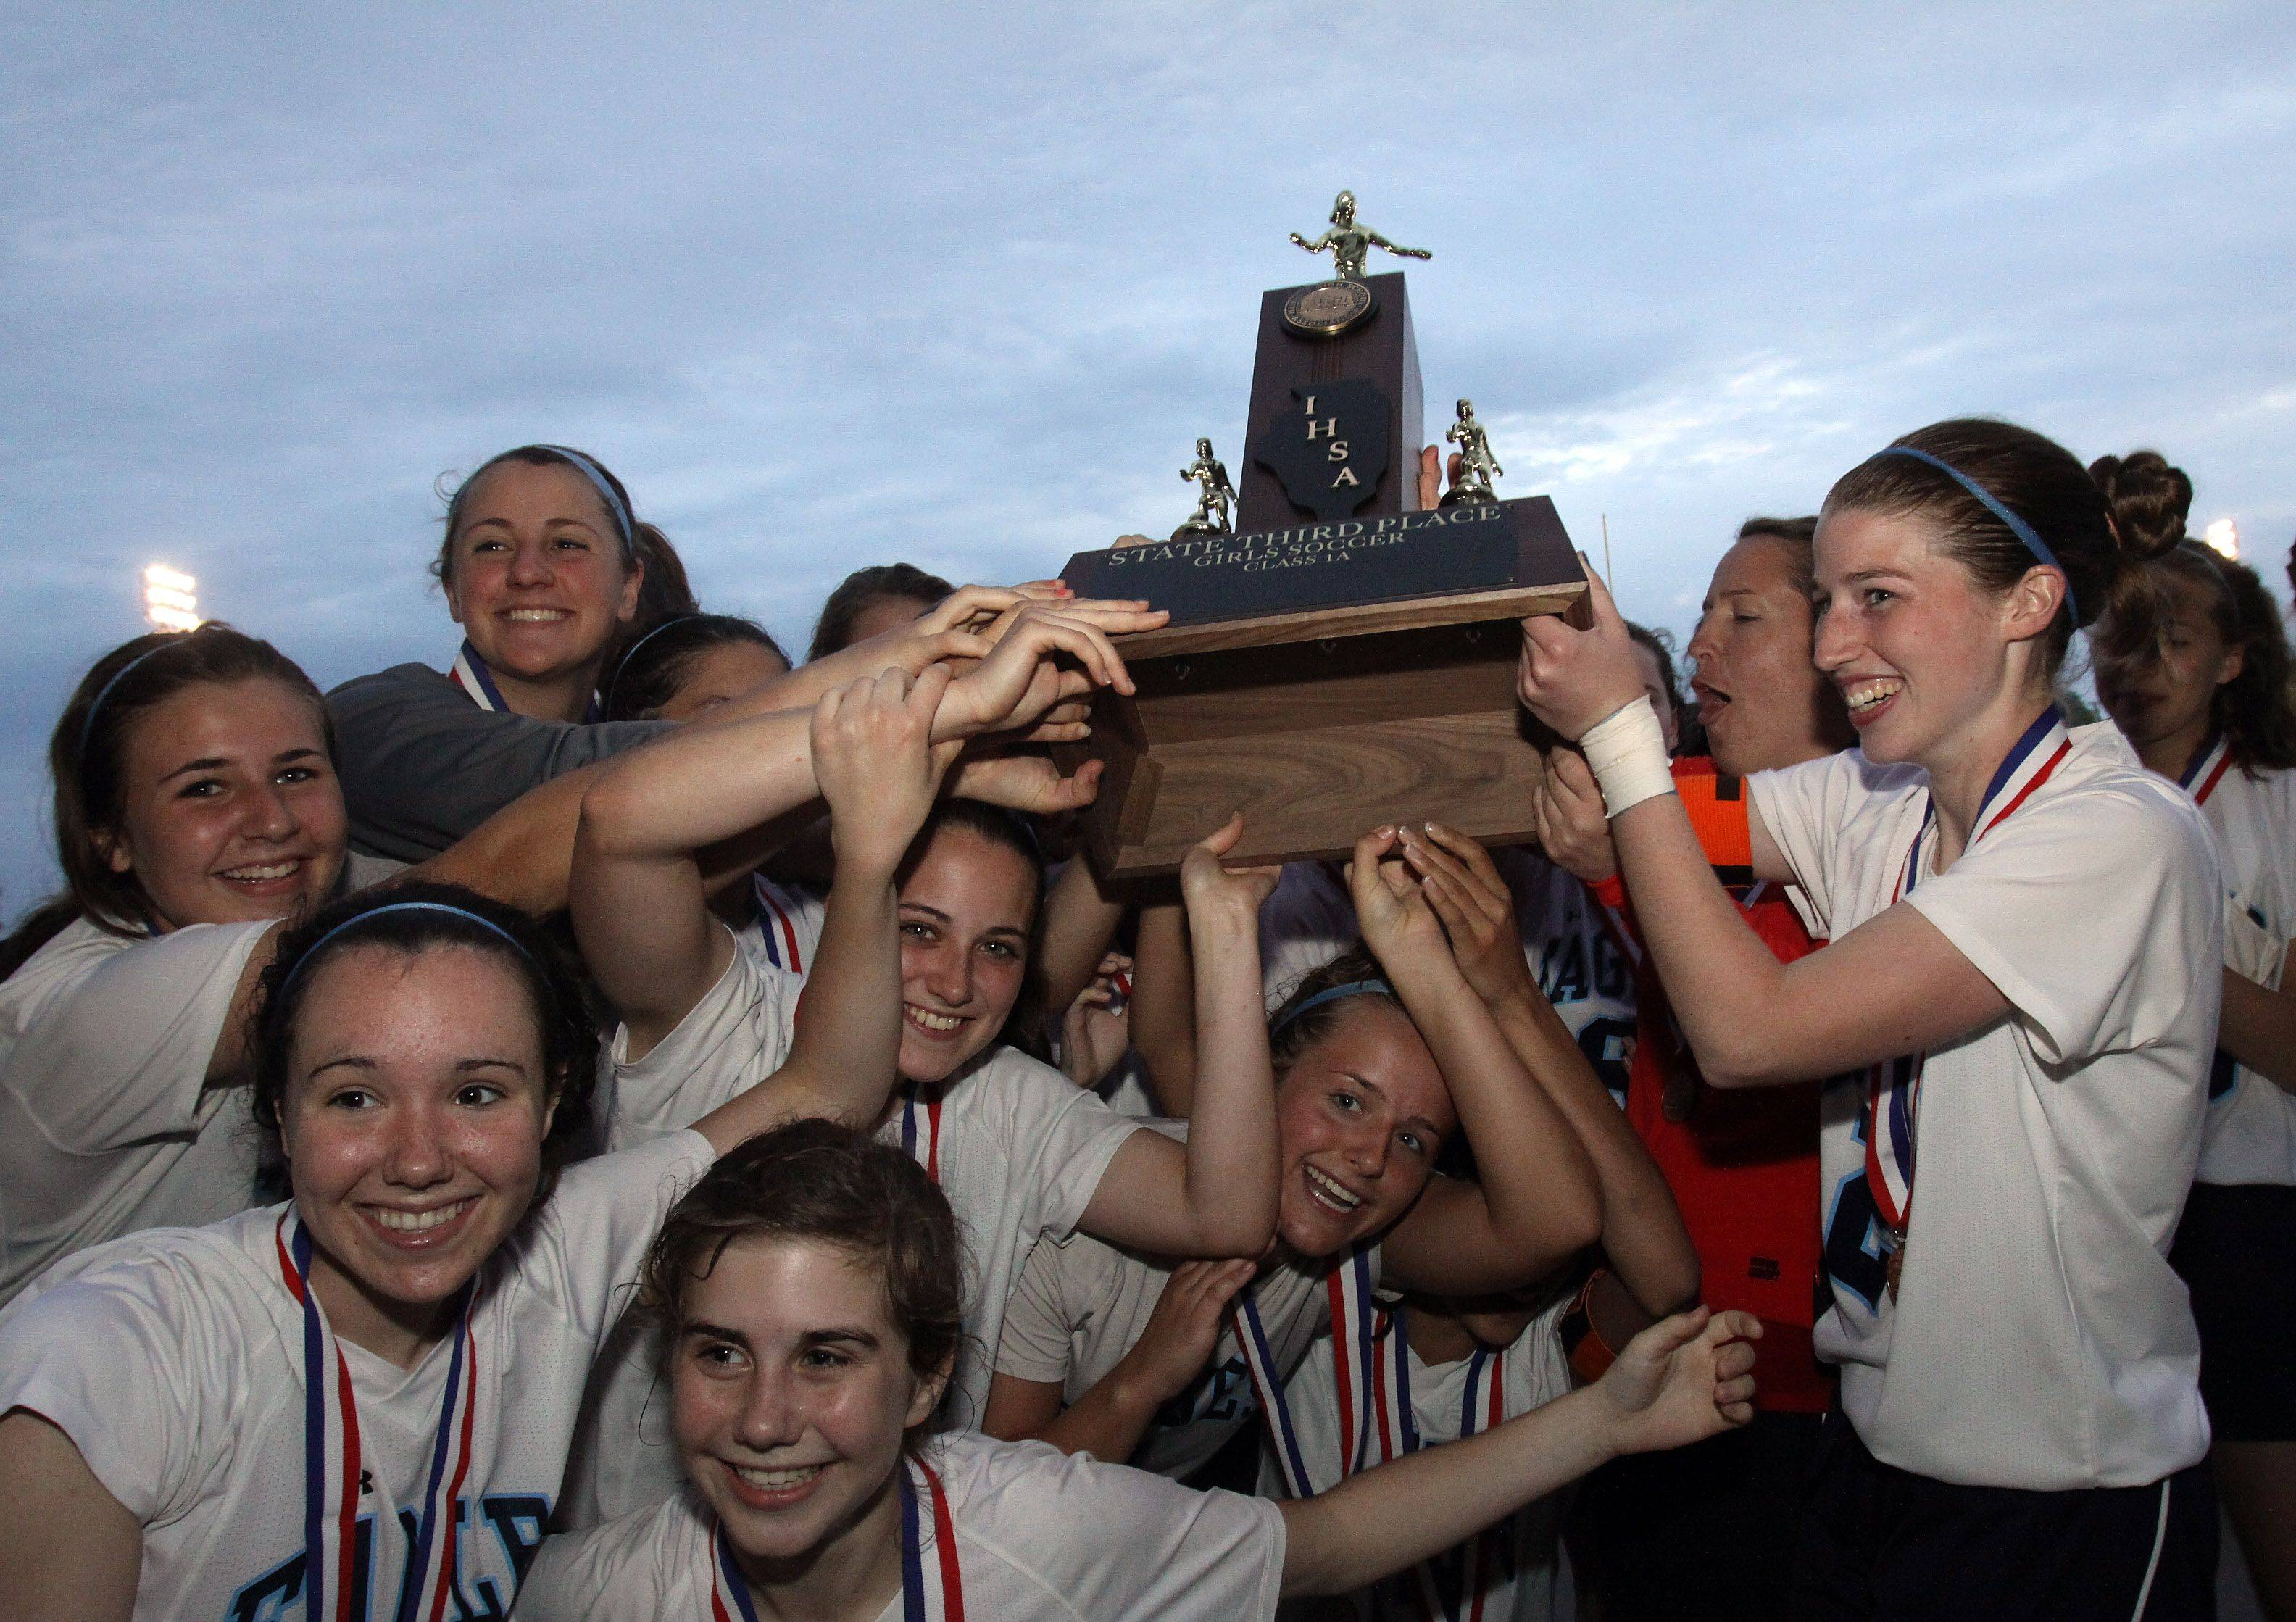 Willows Academy pose with their third place trophy for Class 1A state soccer in Naperville on Saturday.